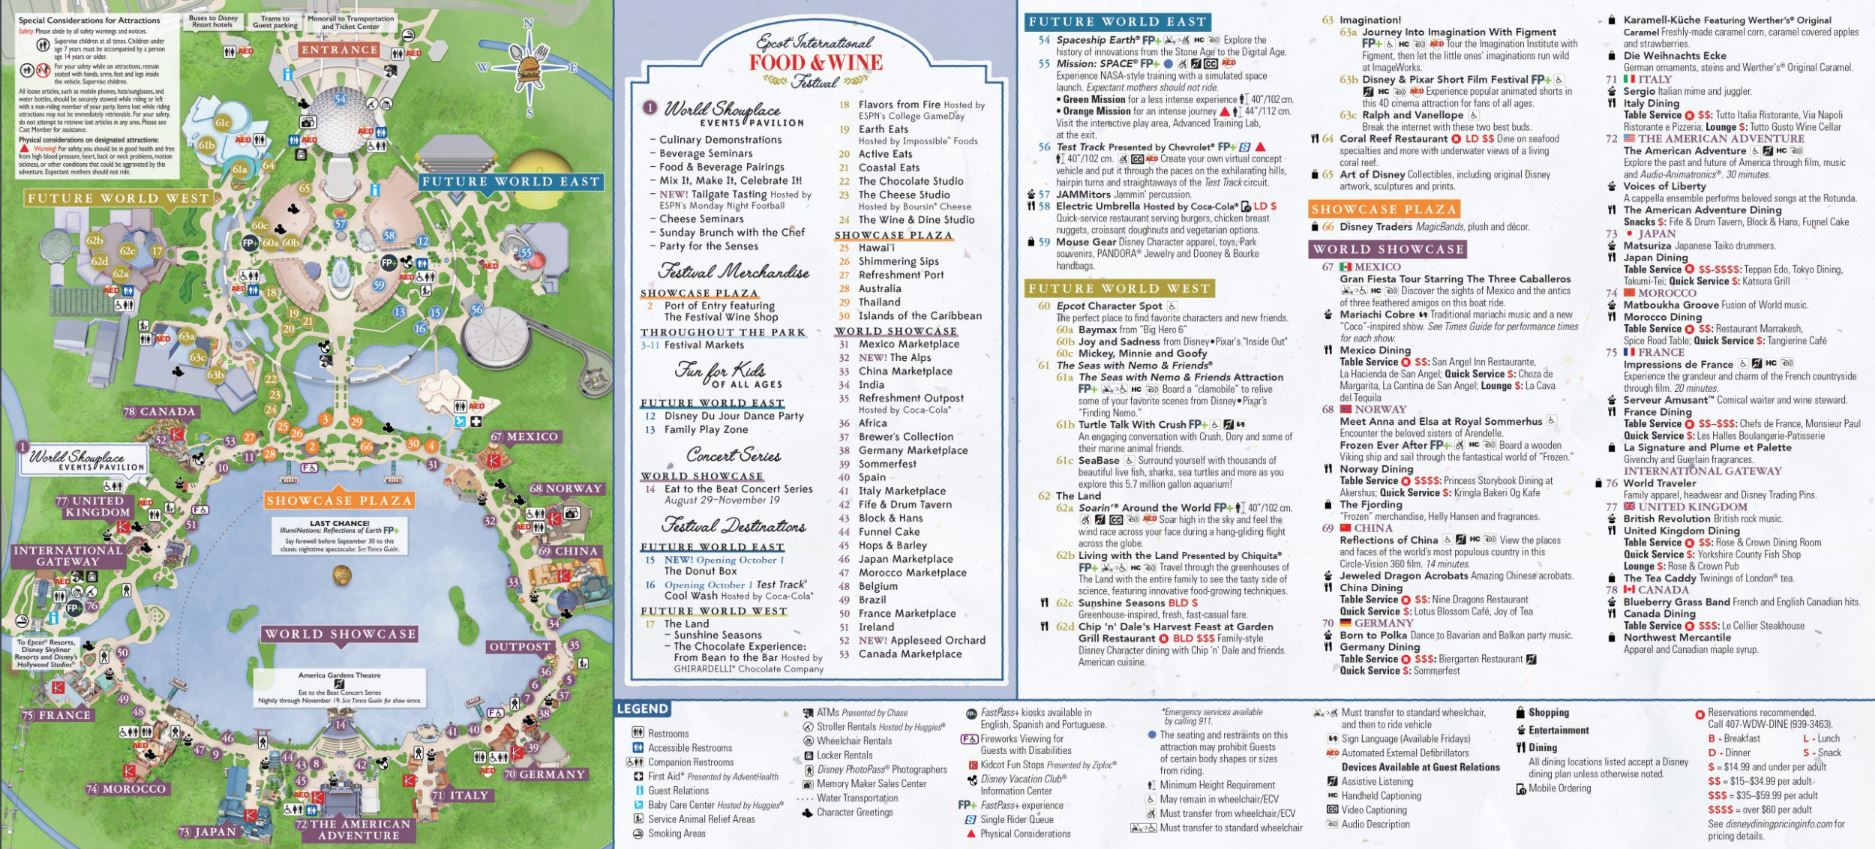 Epcot Food and Wine Festival Guide 3